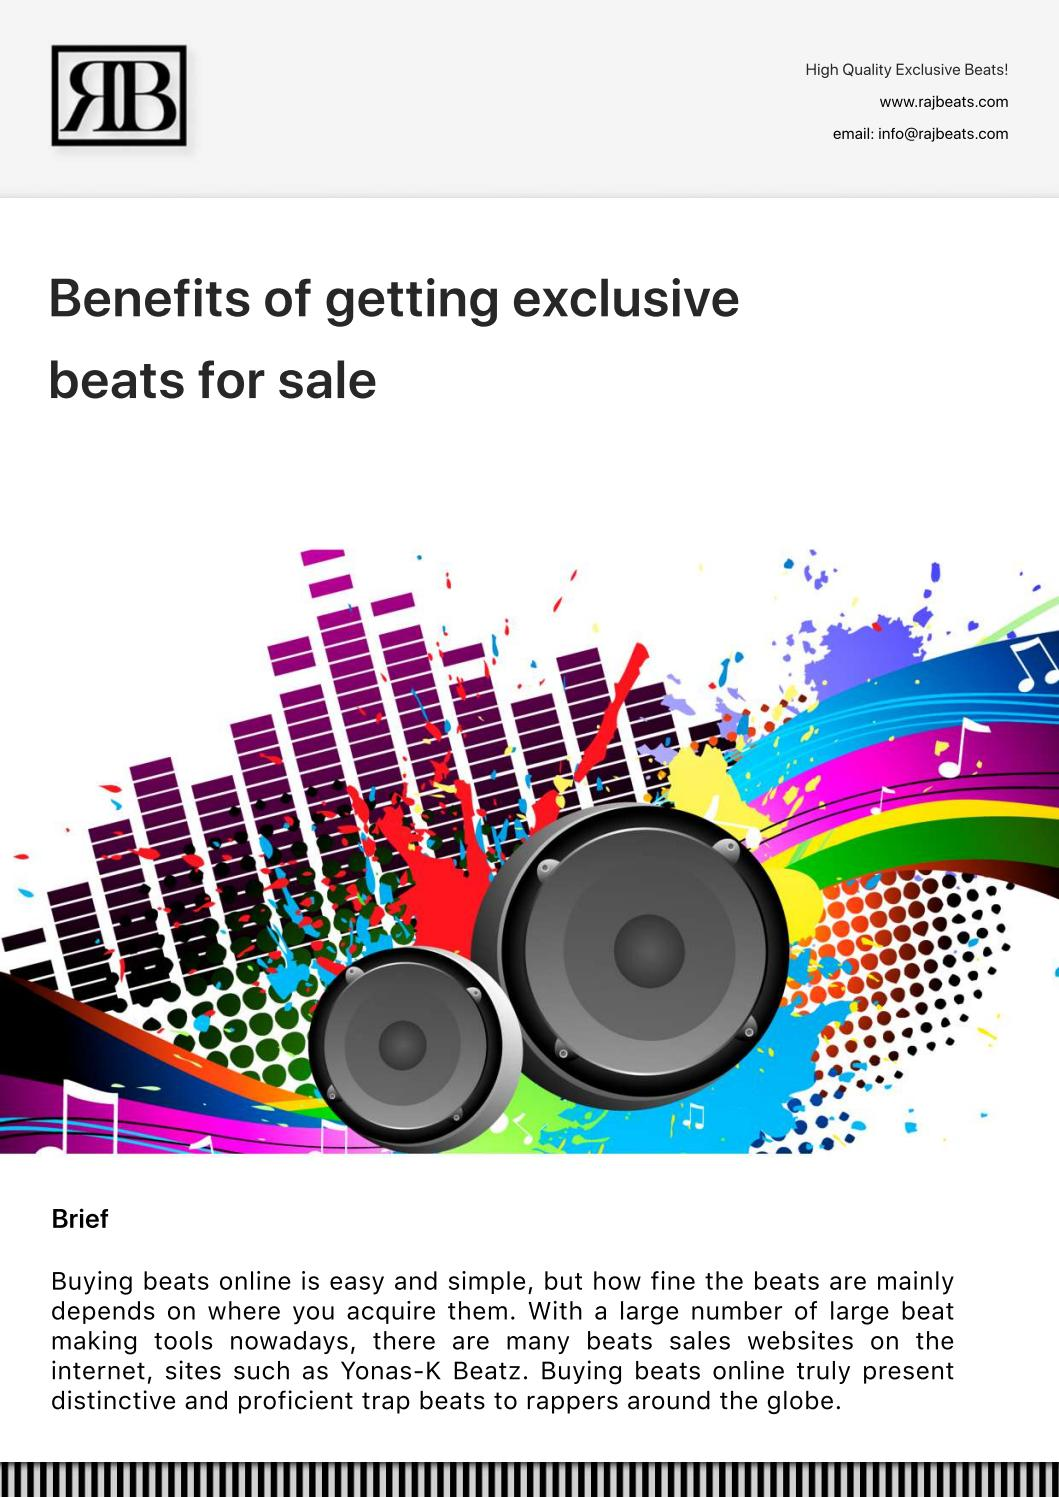 Benefits of getting exclusive beats for sale by